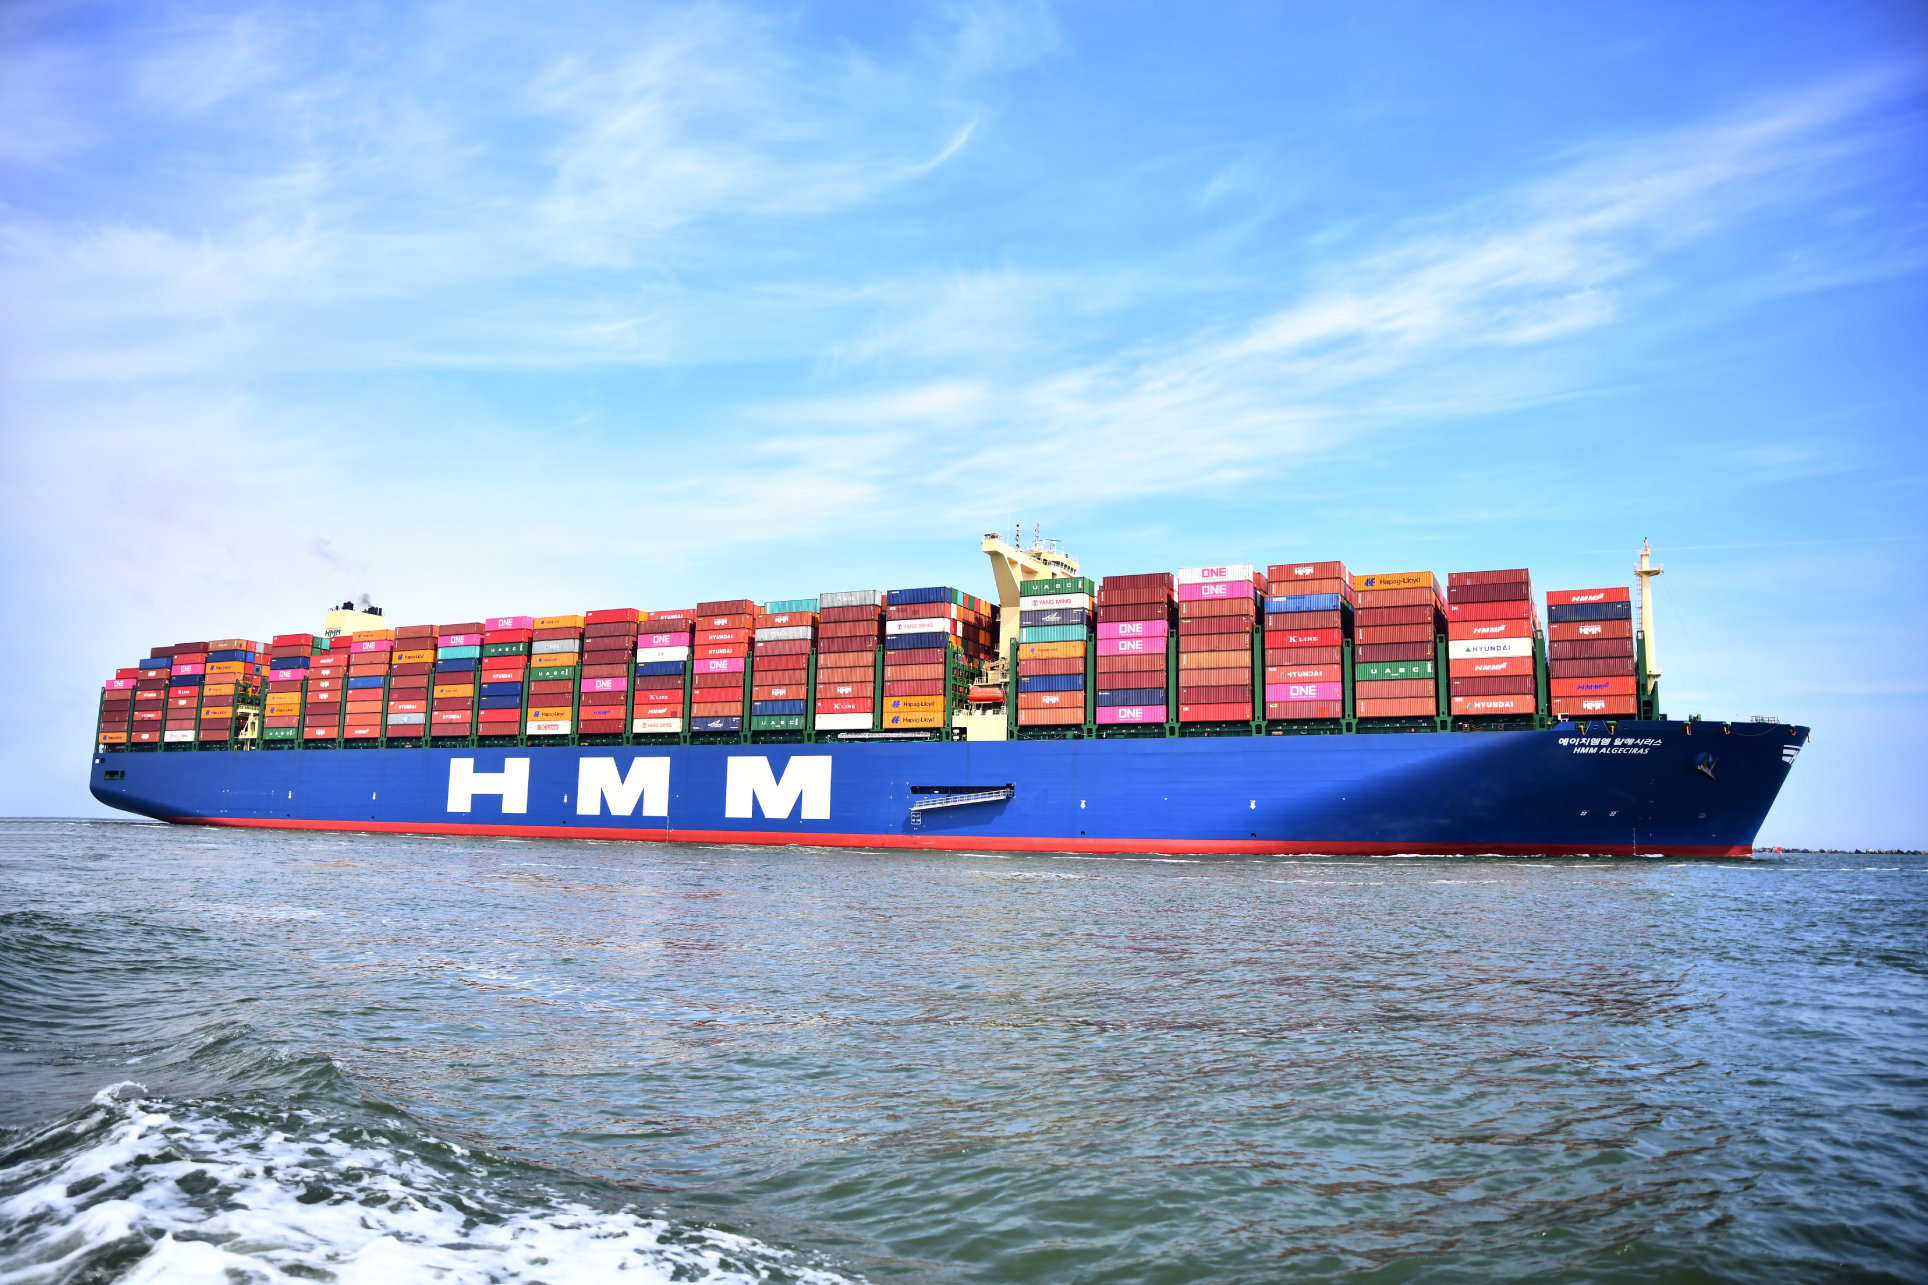 A container ship of HMM, seen from the side. The company was victim of a cyberattack.